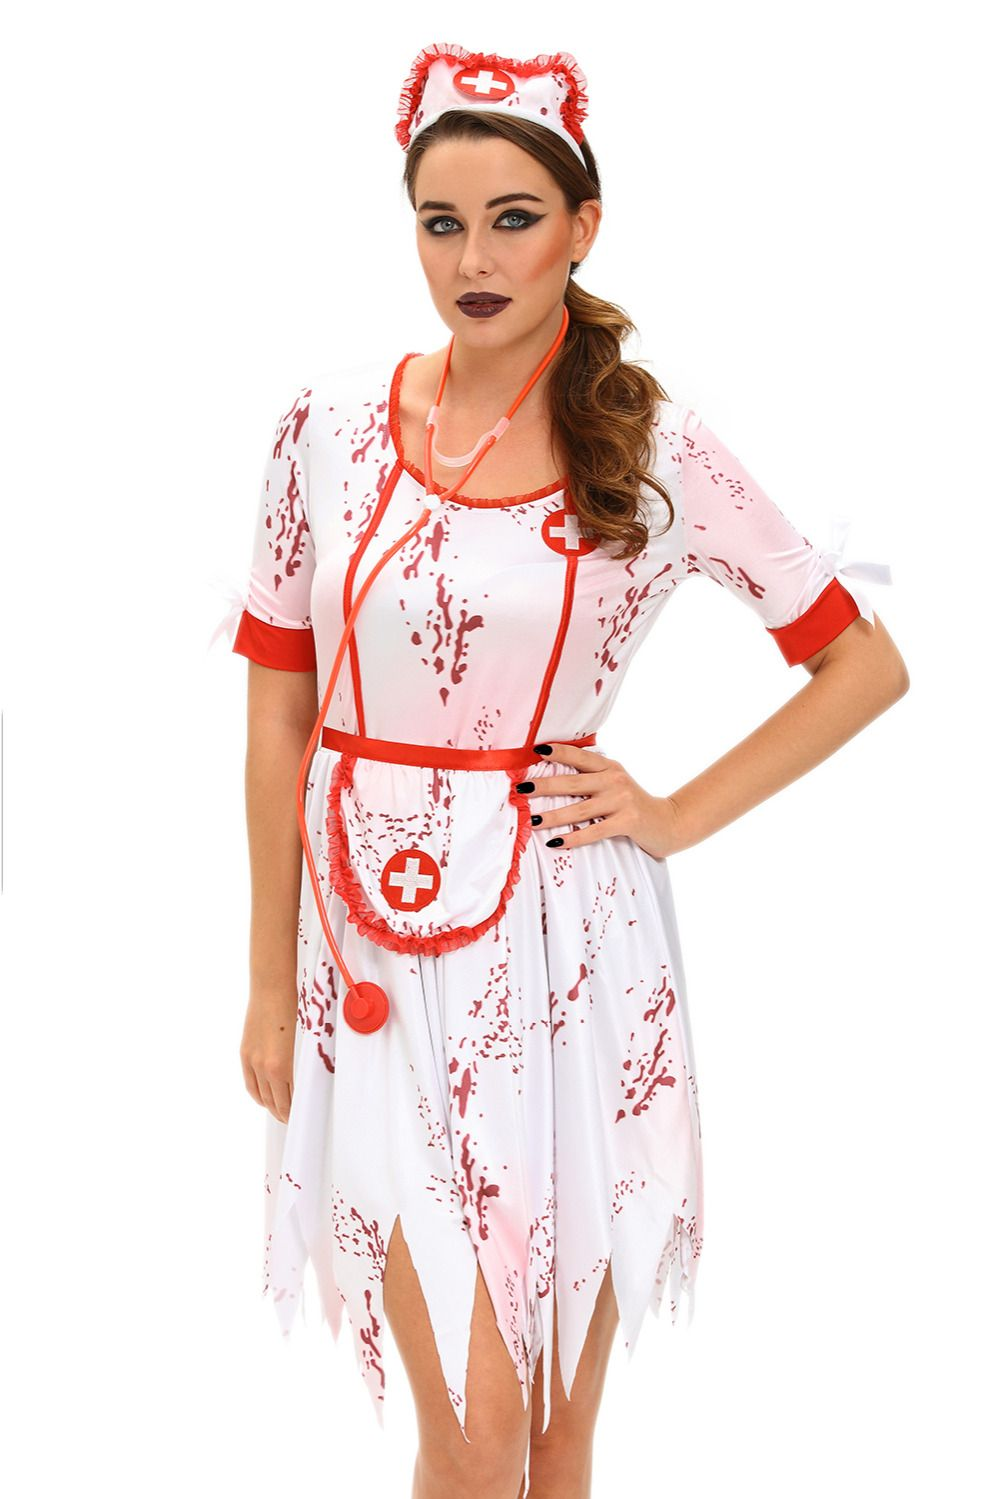 click to buy - Halloween Naughty Costumes